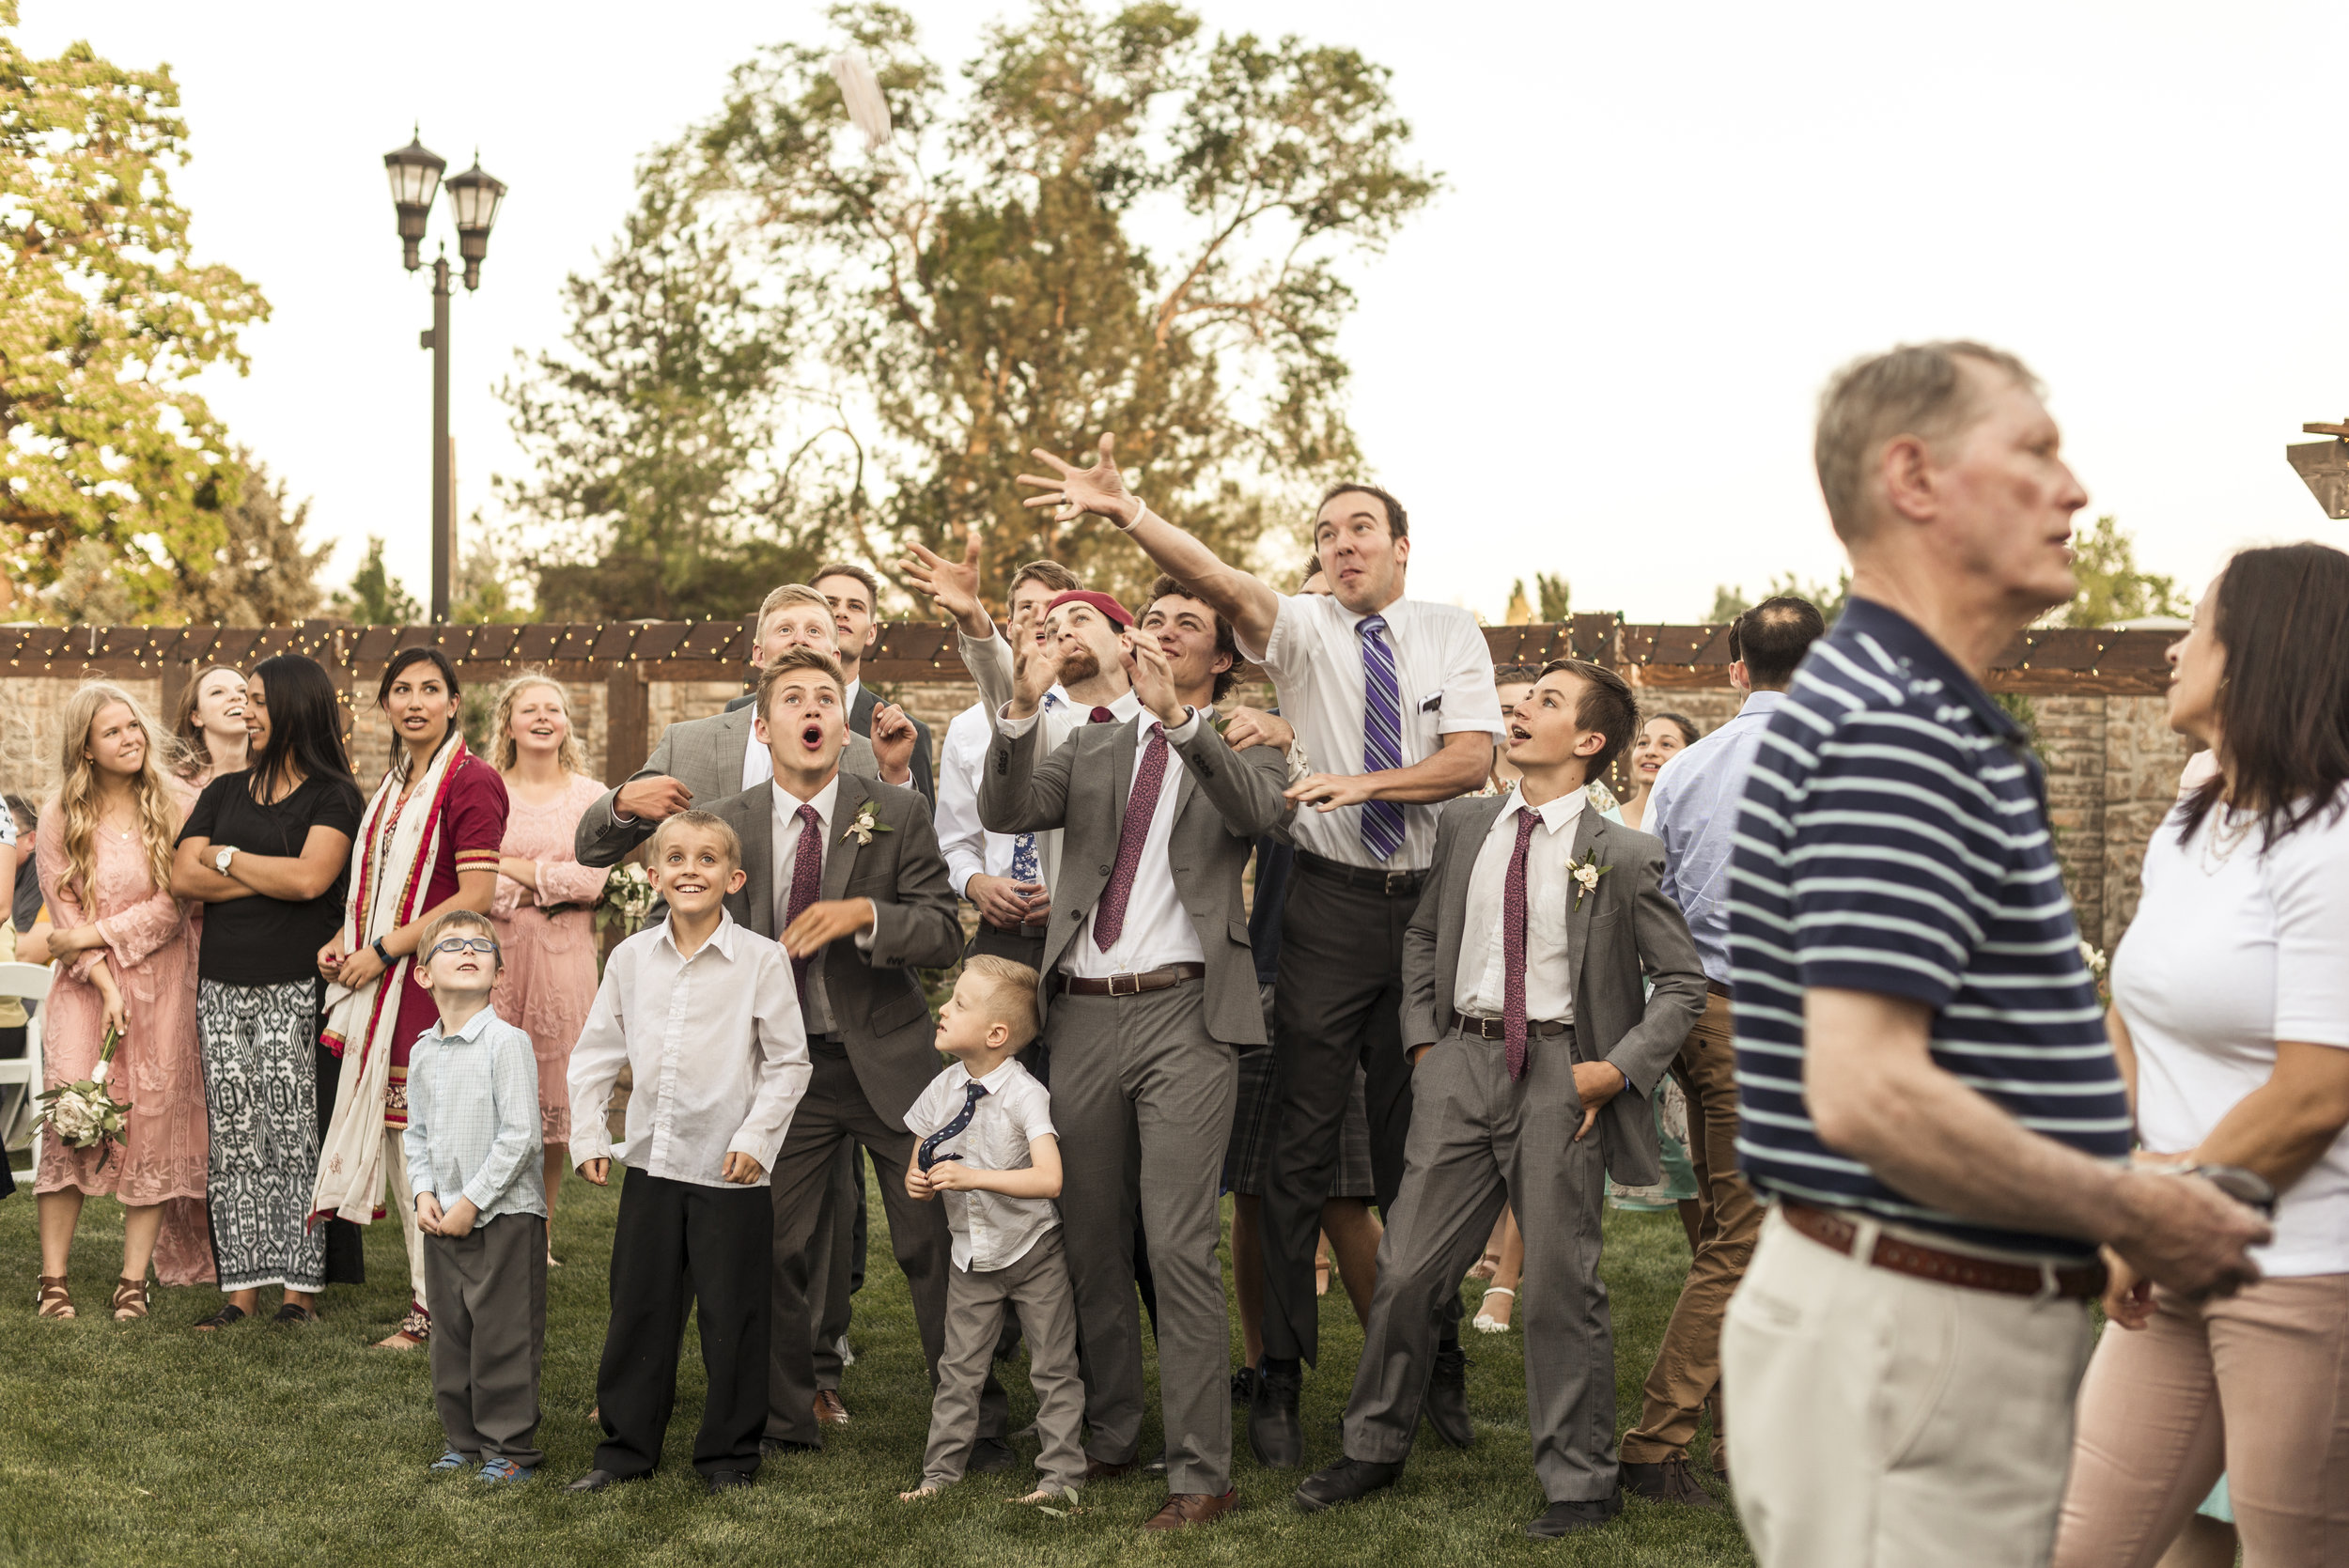 LDS Summer Wedding | South Jordan, Utah Wedding Photographer| Bri Bergman Photography 29.JPG